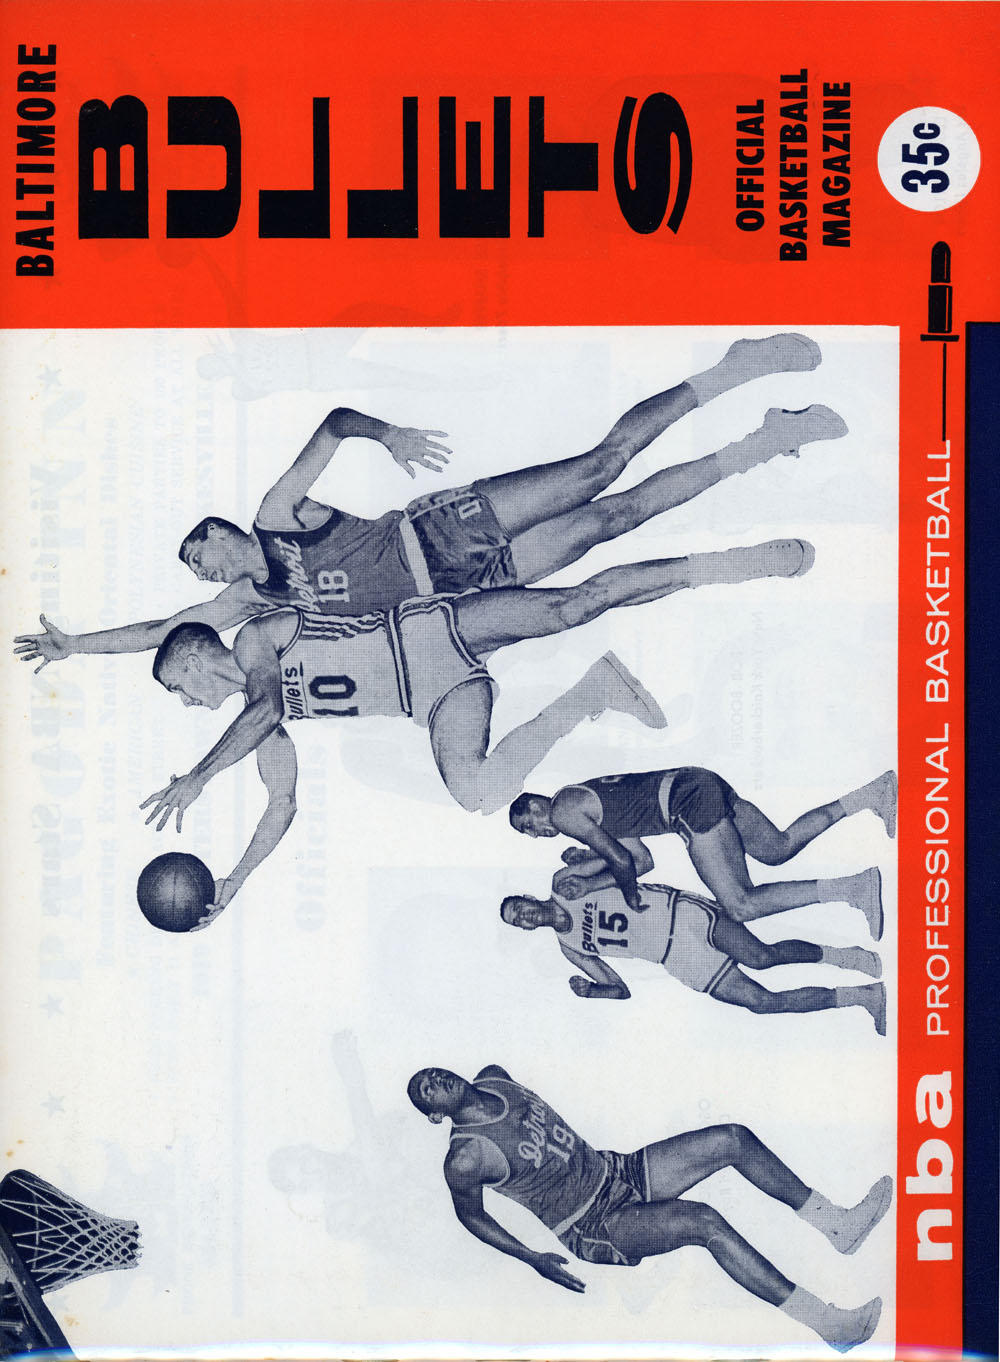 1964 65 NBA BOSTON CELTICS vs BALTIMORE BULLETS GAME PROGRAM